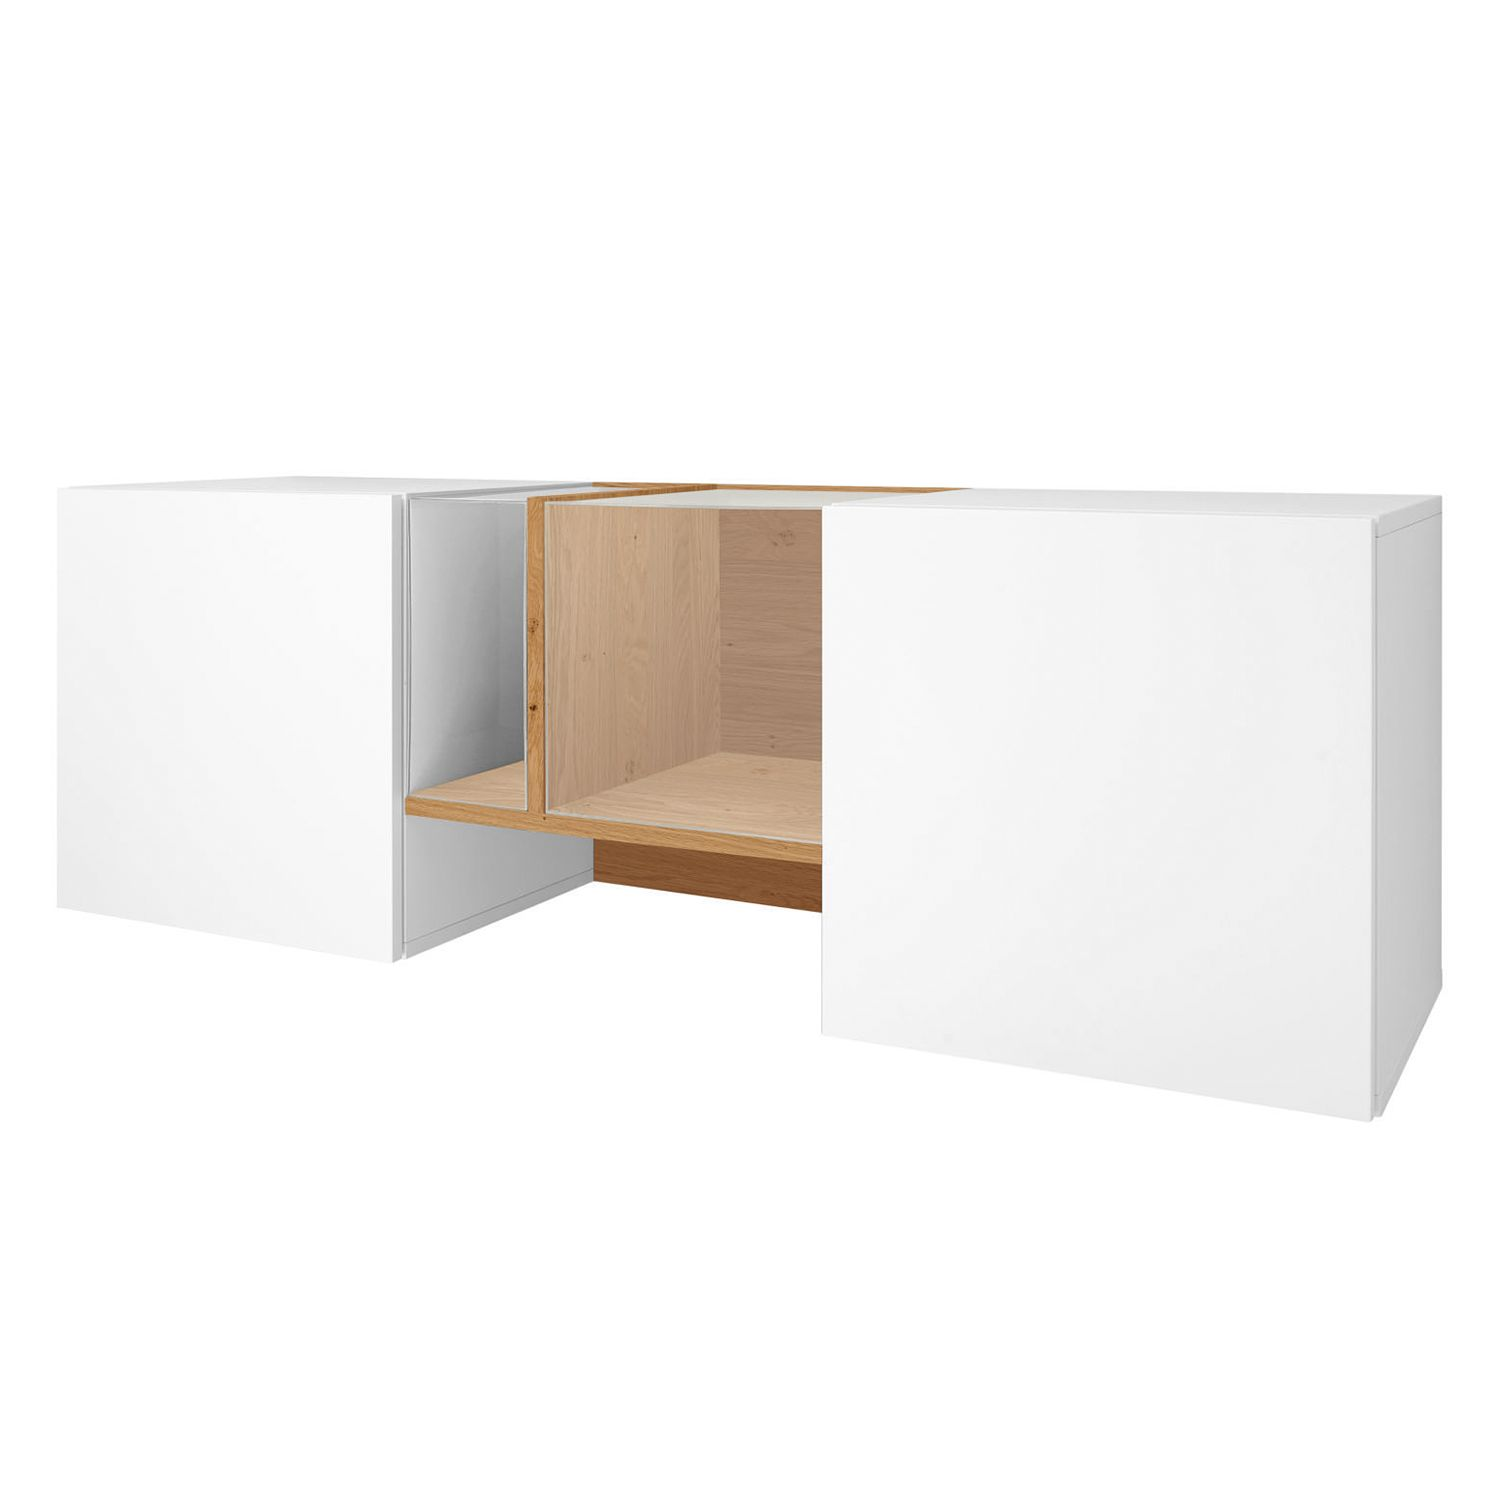 Sideboard hülsta now for you II